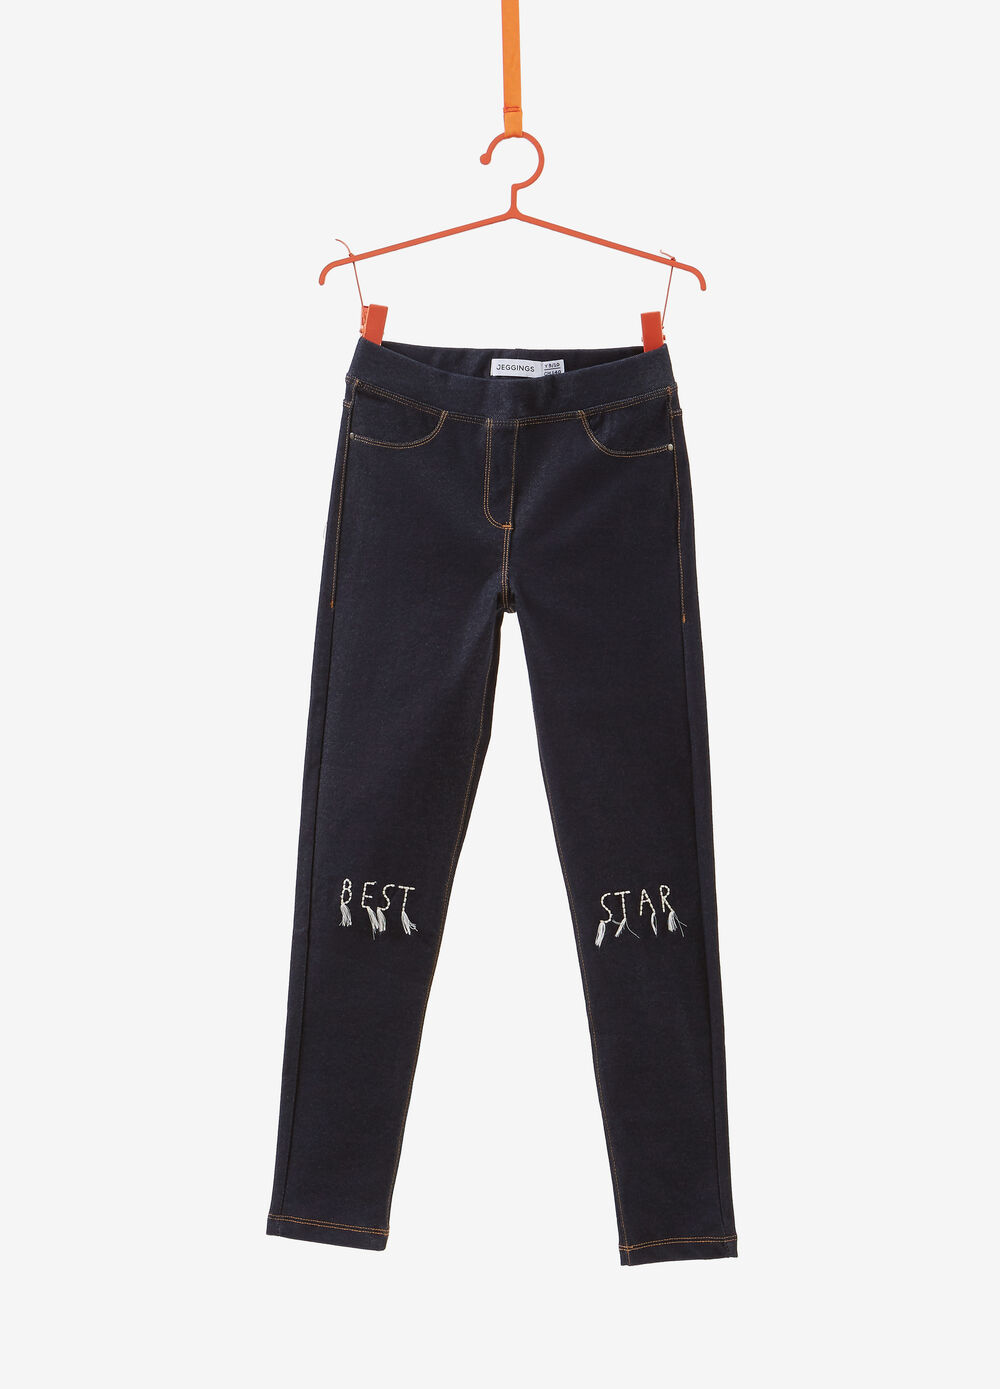 Jeggings with embroidered lettering